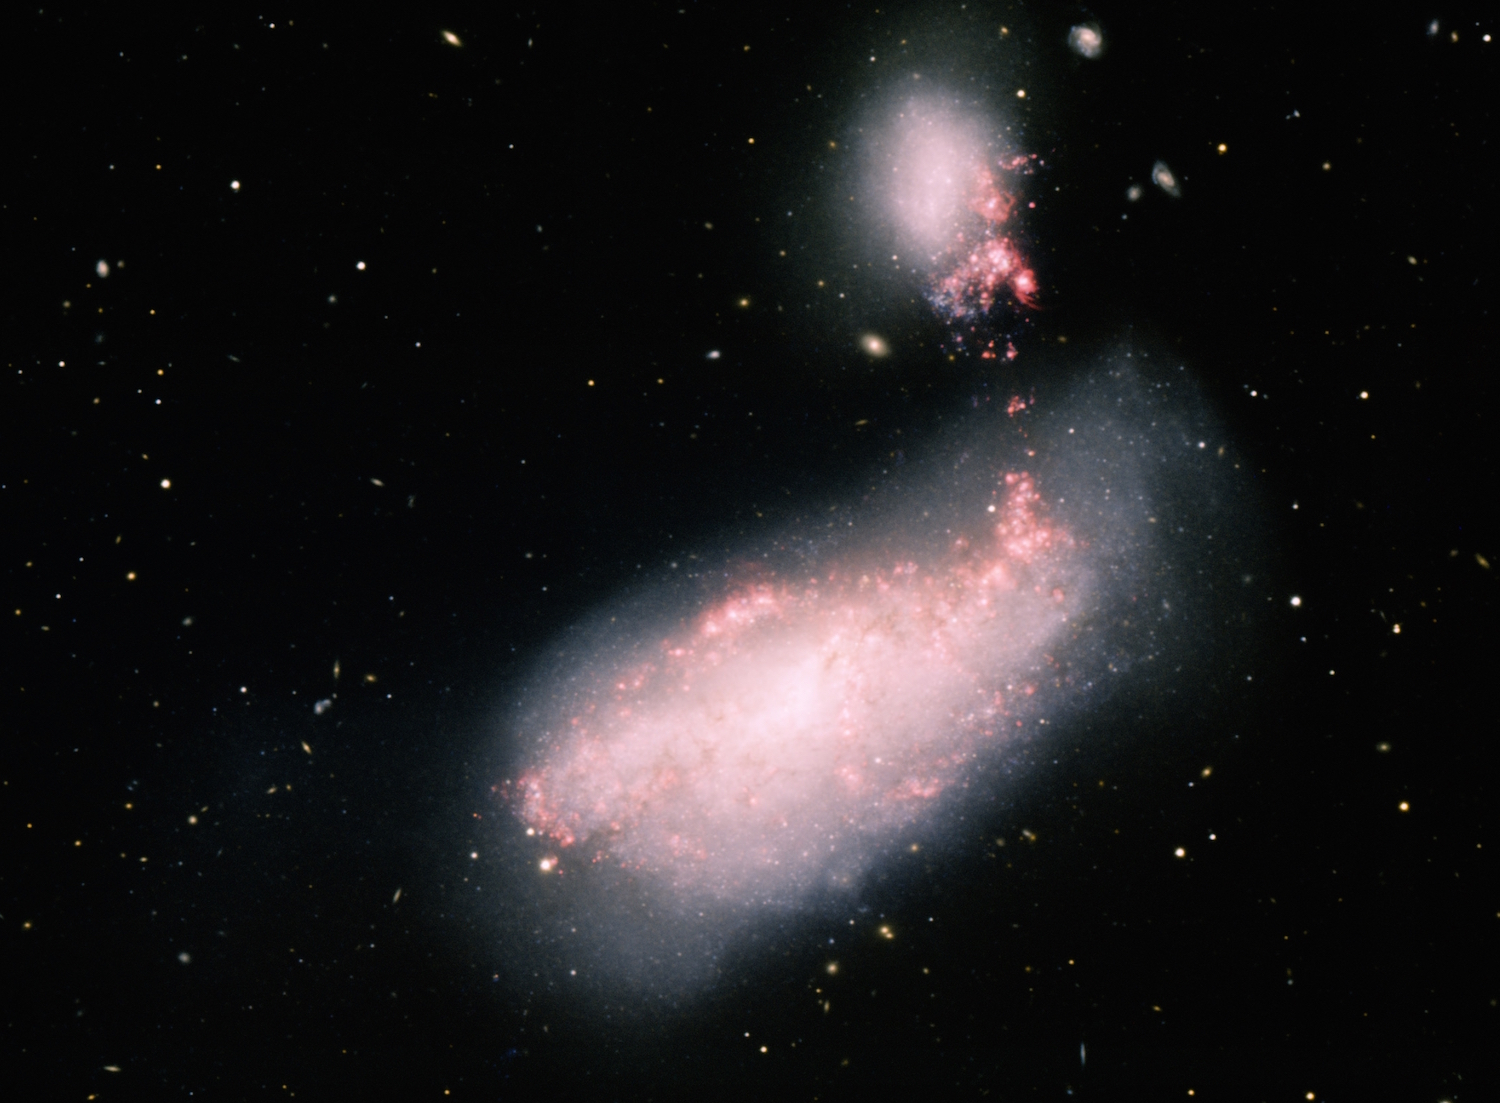 Light from what may have been the collision of two stars in the galaxy NGC 4490 reached Earth in 2011. Observations from amateur astronomers helped researchers in their investigation of the event.  Credit:  T.A. Rector (University of Alaska Anchorage) and H. Schweiker (Wiyn and Noao/Aura/NSF)